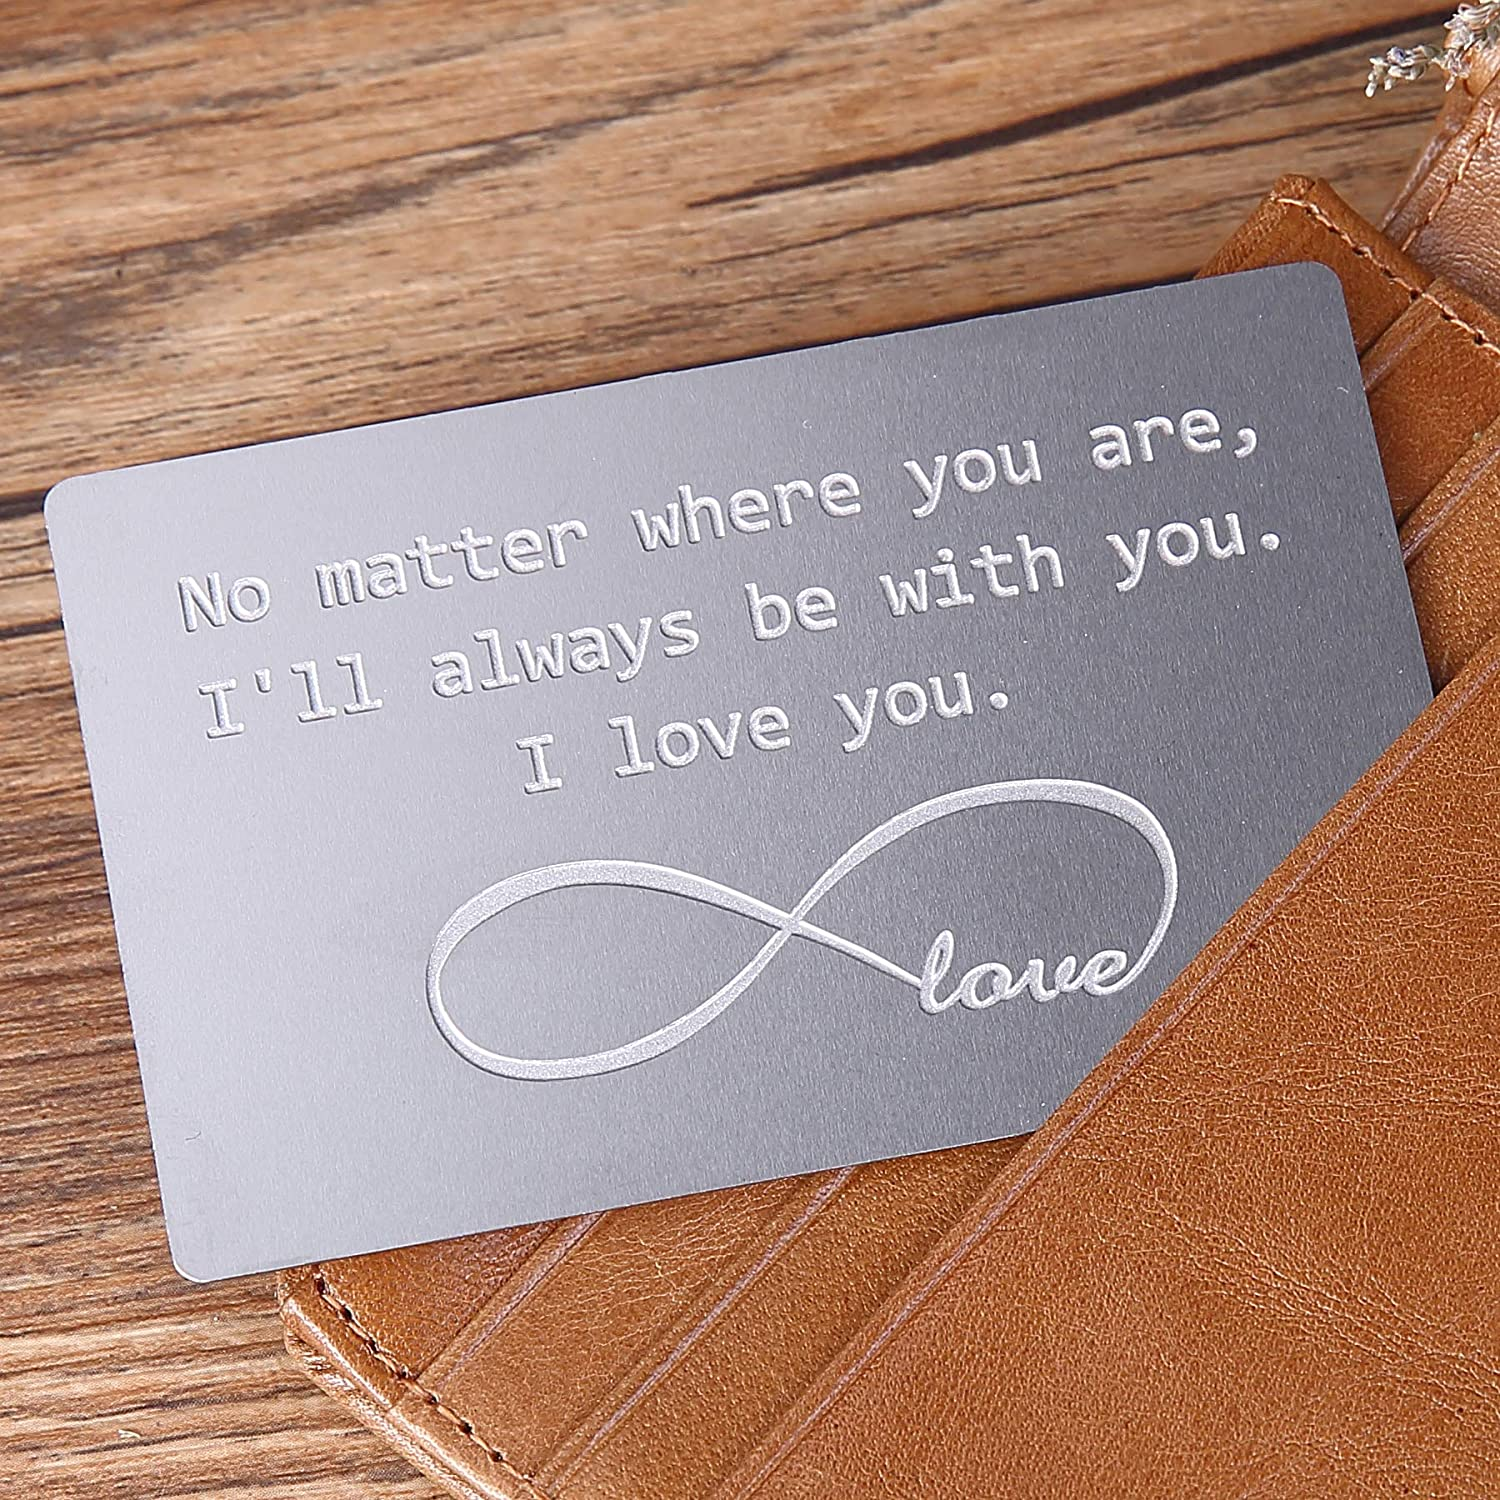 Image of an engraved metal wallet insert in gray color, for couple.